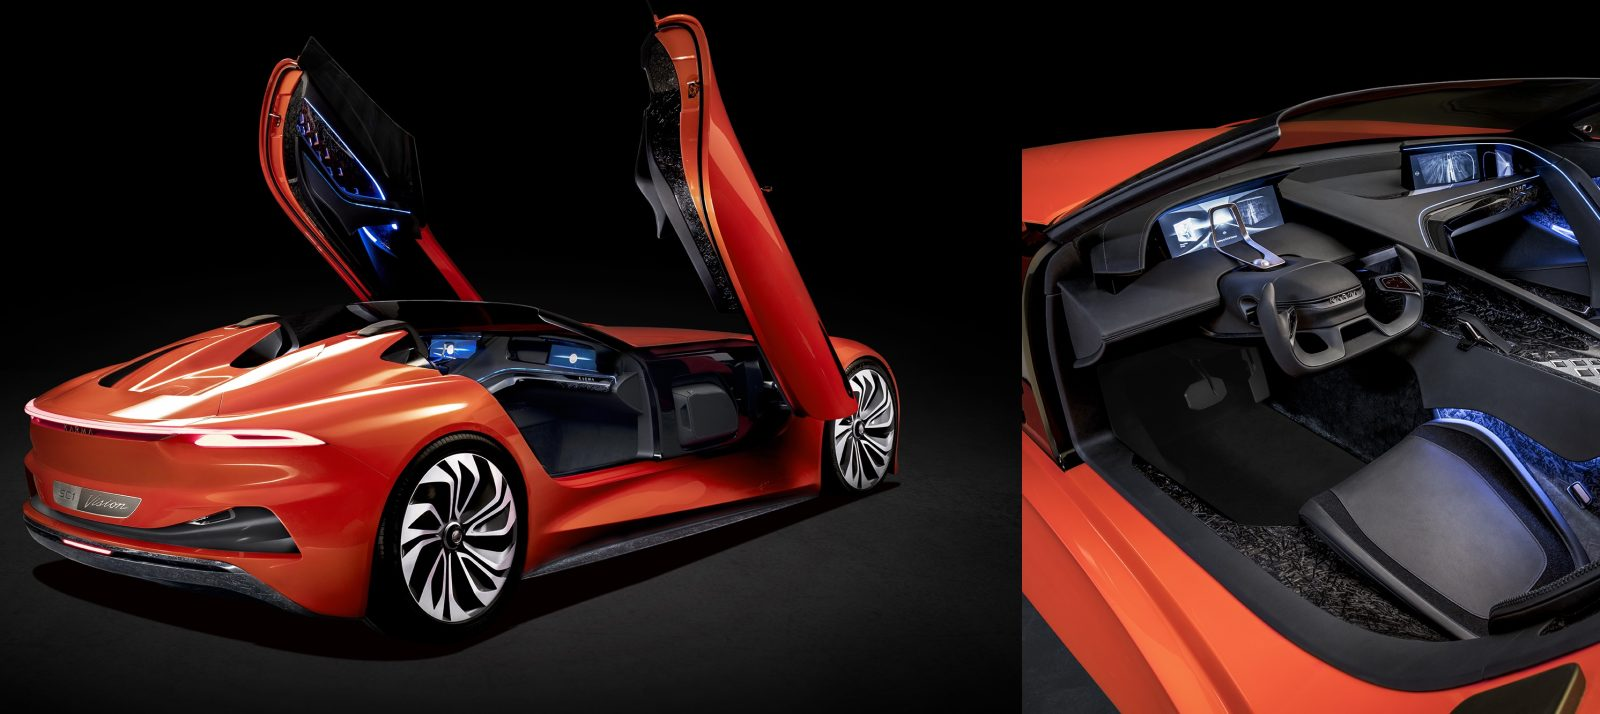 Karma unveils its first all-electric car, a hypercar with insane-looking doors